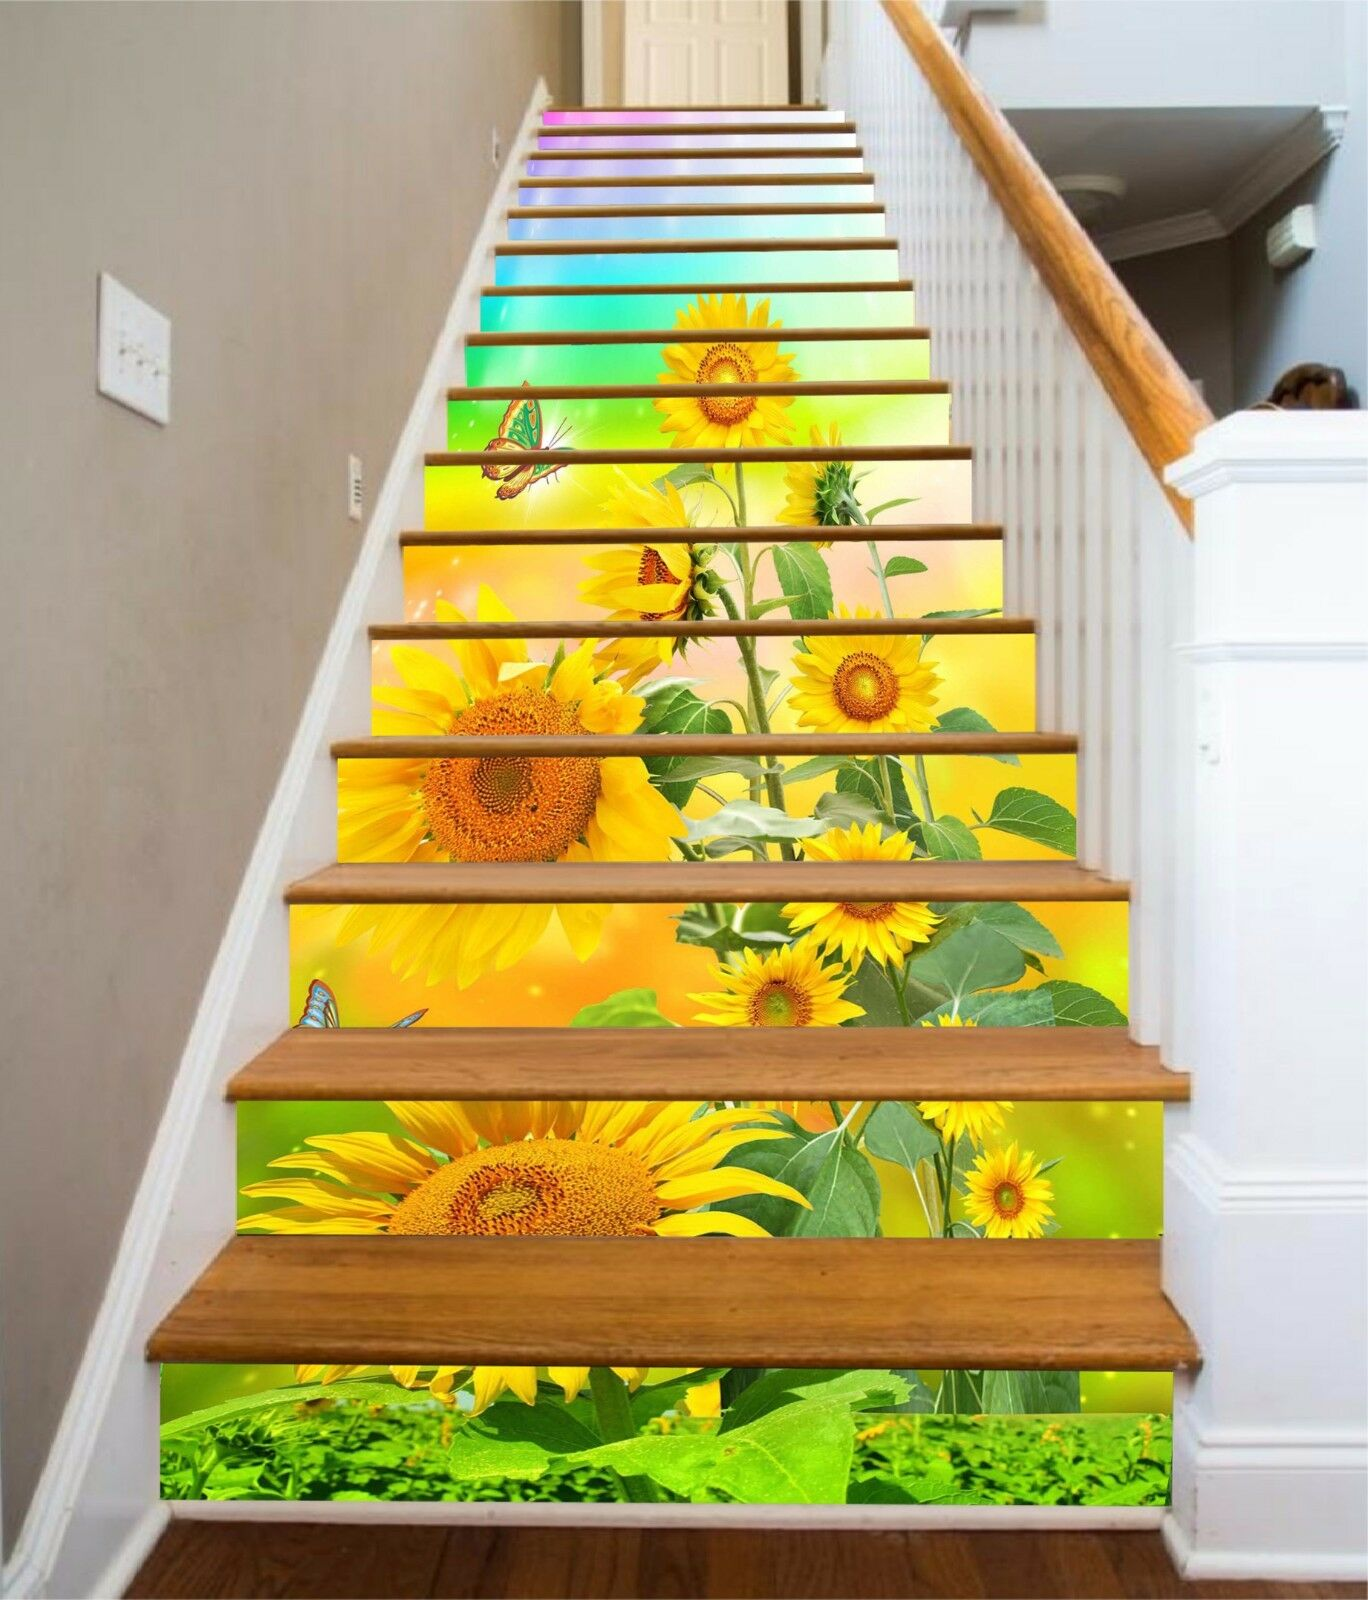 3D Sunflower Stair Risers Decoration Photo Mural Vinyl Decal Wallpaper AU